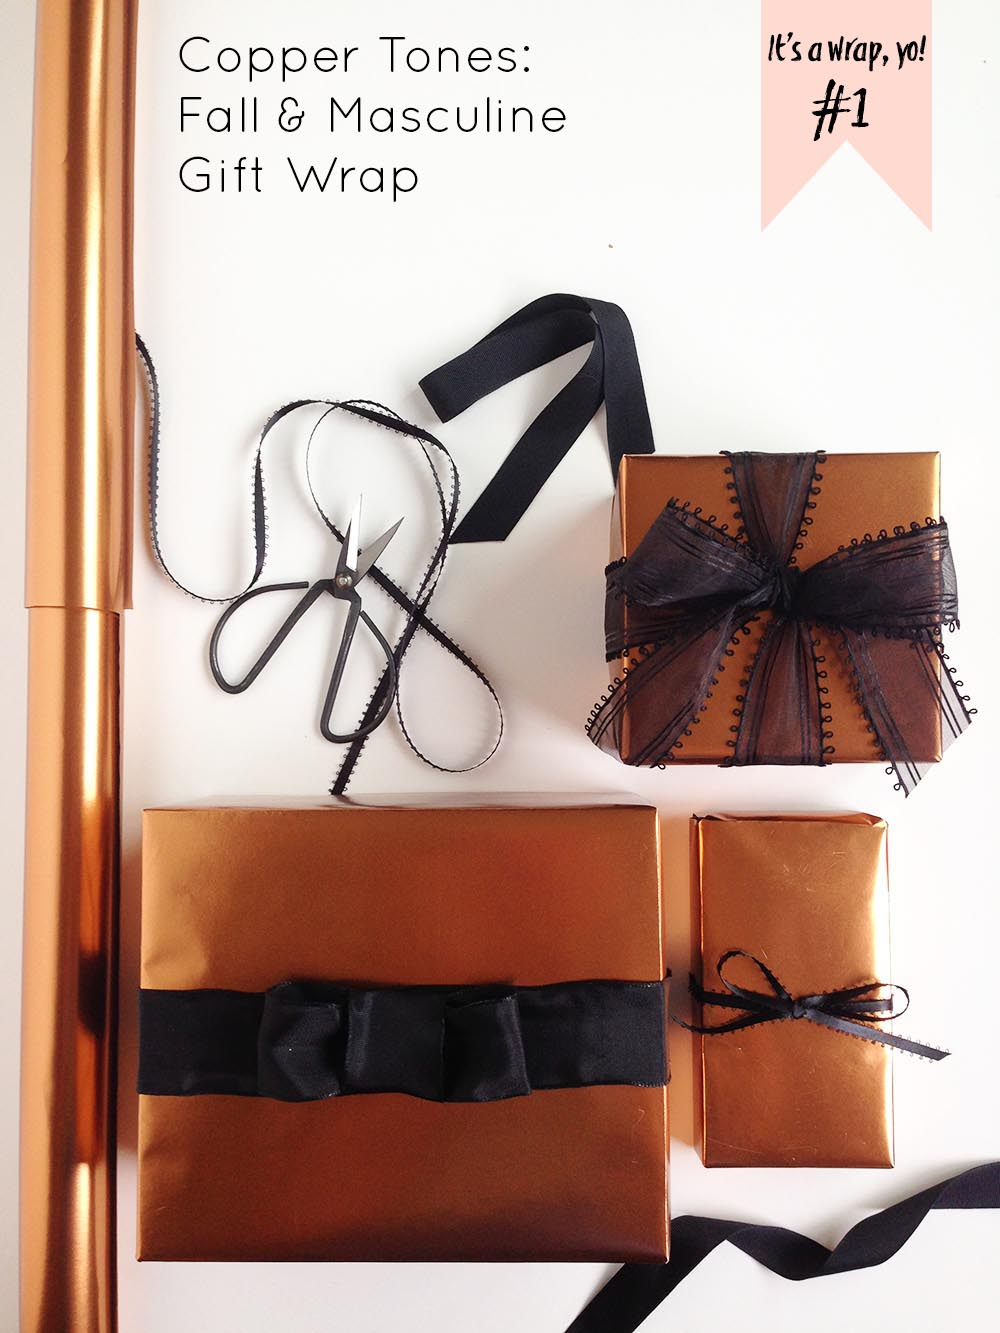 it 39 s a wrap yo 1 wrapping tips copper tones for fall and masculine gifts gold standard. Black Bedroom Furniture Sets. Home Design Ideas